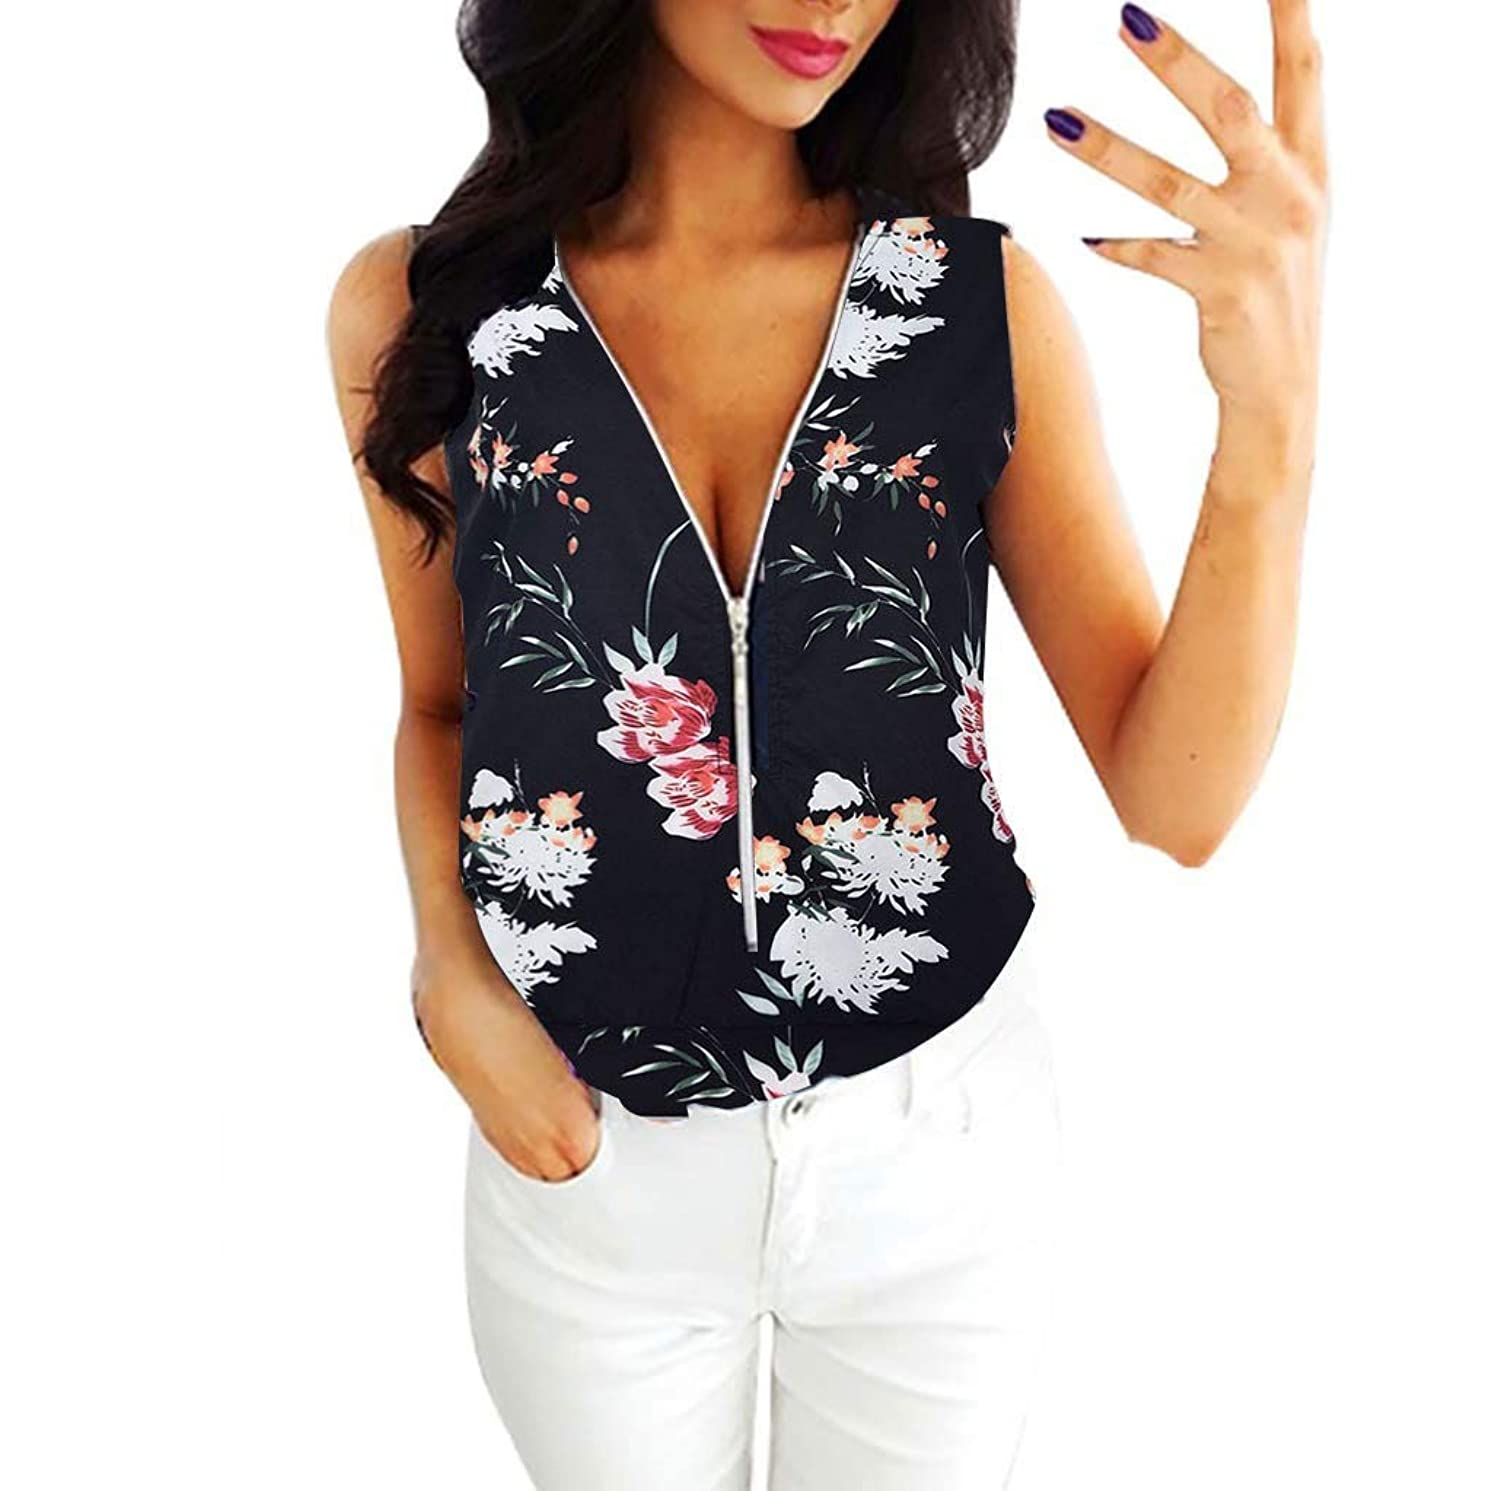 Tank Tops for Women Clearence Sale 2019, Ladies Printing Sleeveless Camisole Vest Blouse Pullover Tops - by Lismea